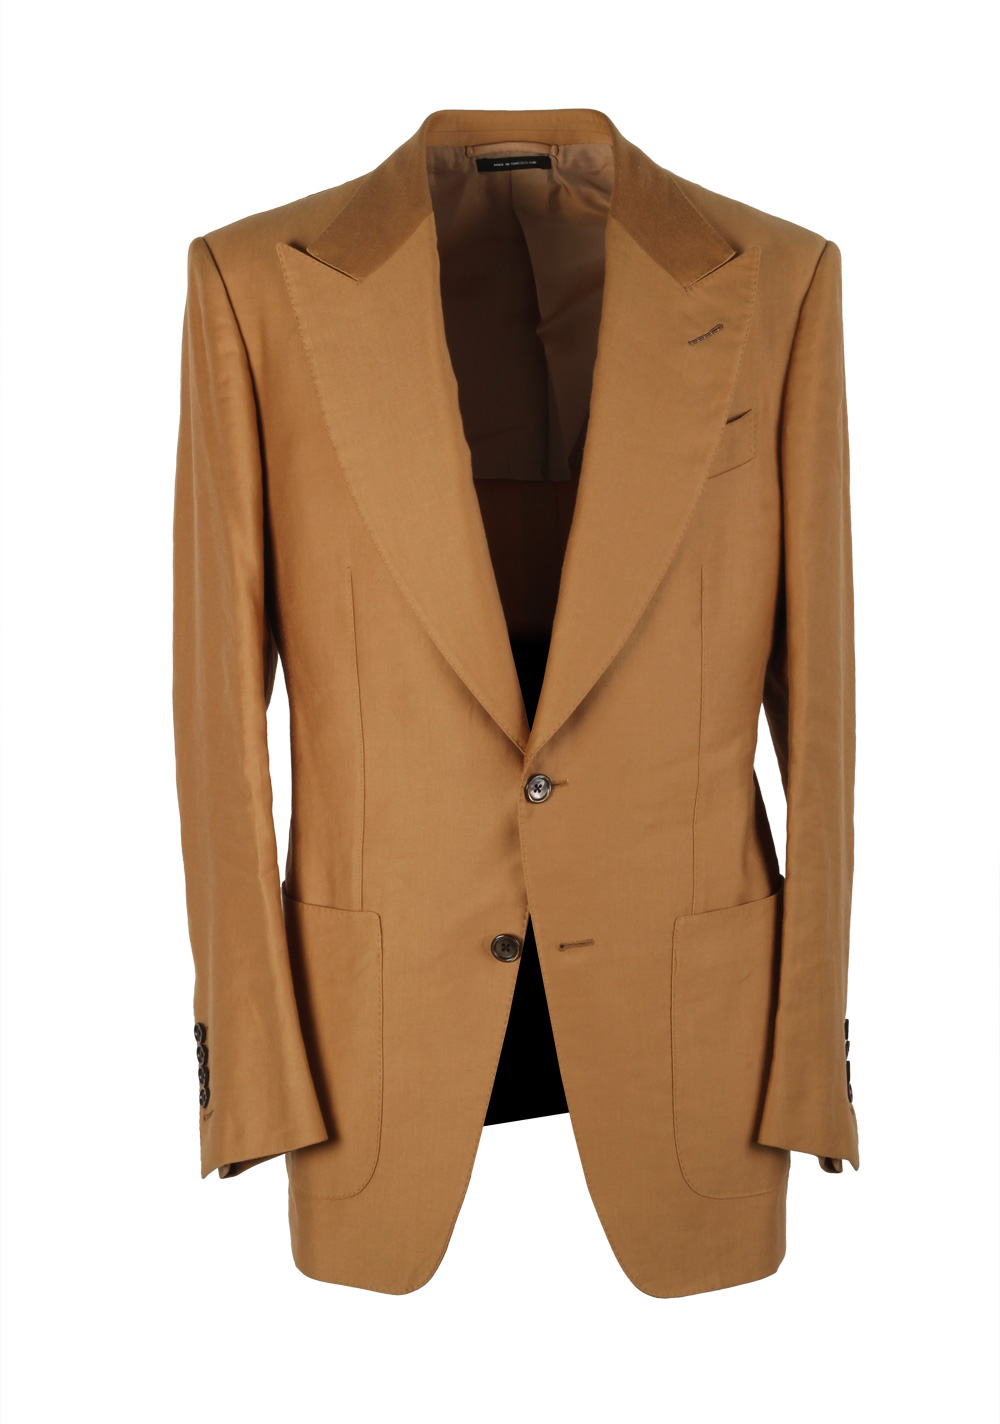 TOM FORD Atticus Sand Suit Size 46 / 36R U.S. In Cotton Linen | Costume Limité